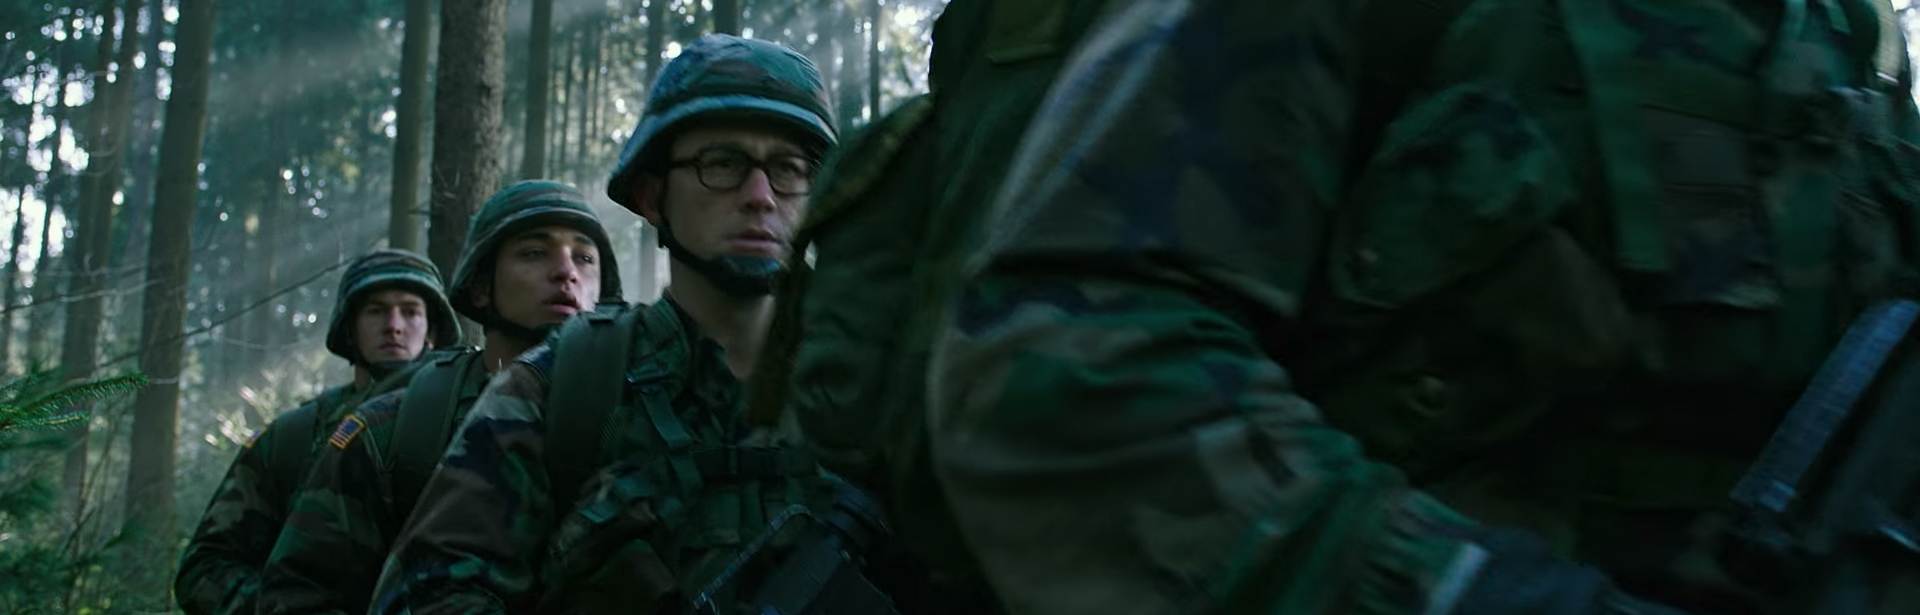 Snowden. Image Credit: Open Road Films.